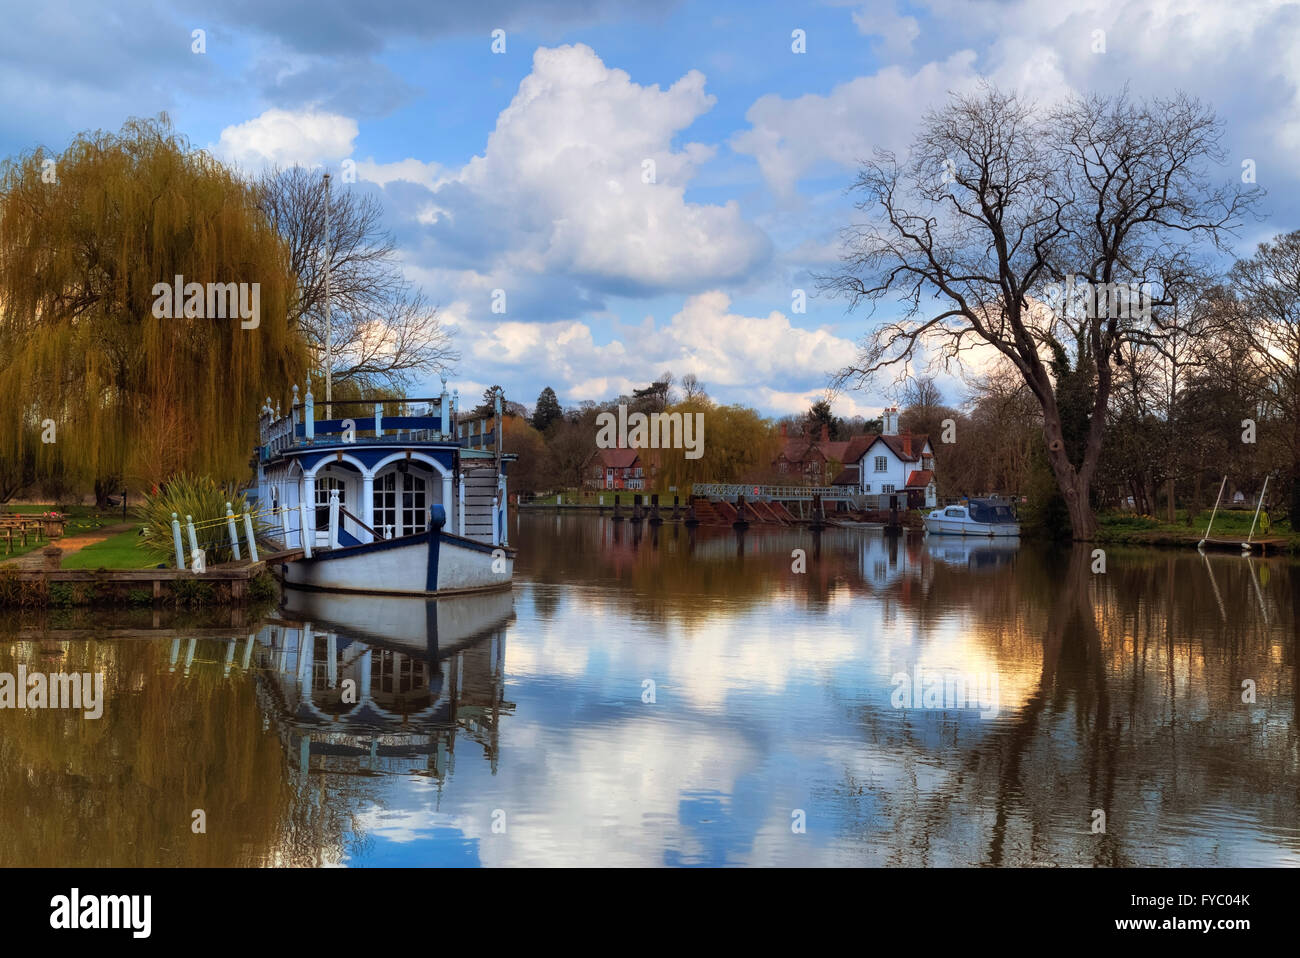 Strateley, Berkshire, England, UK - Stock Image